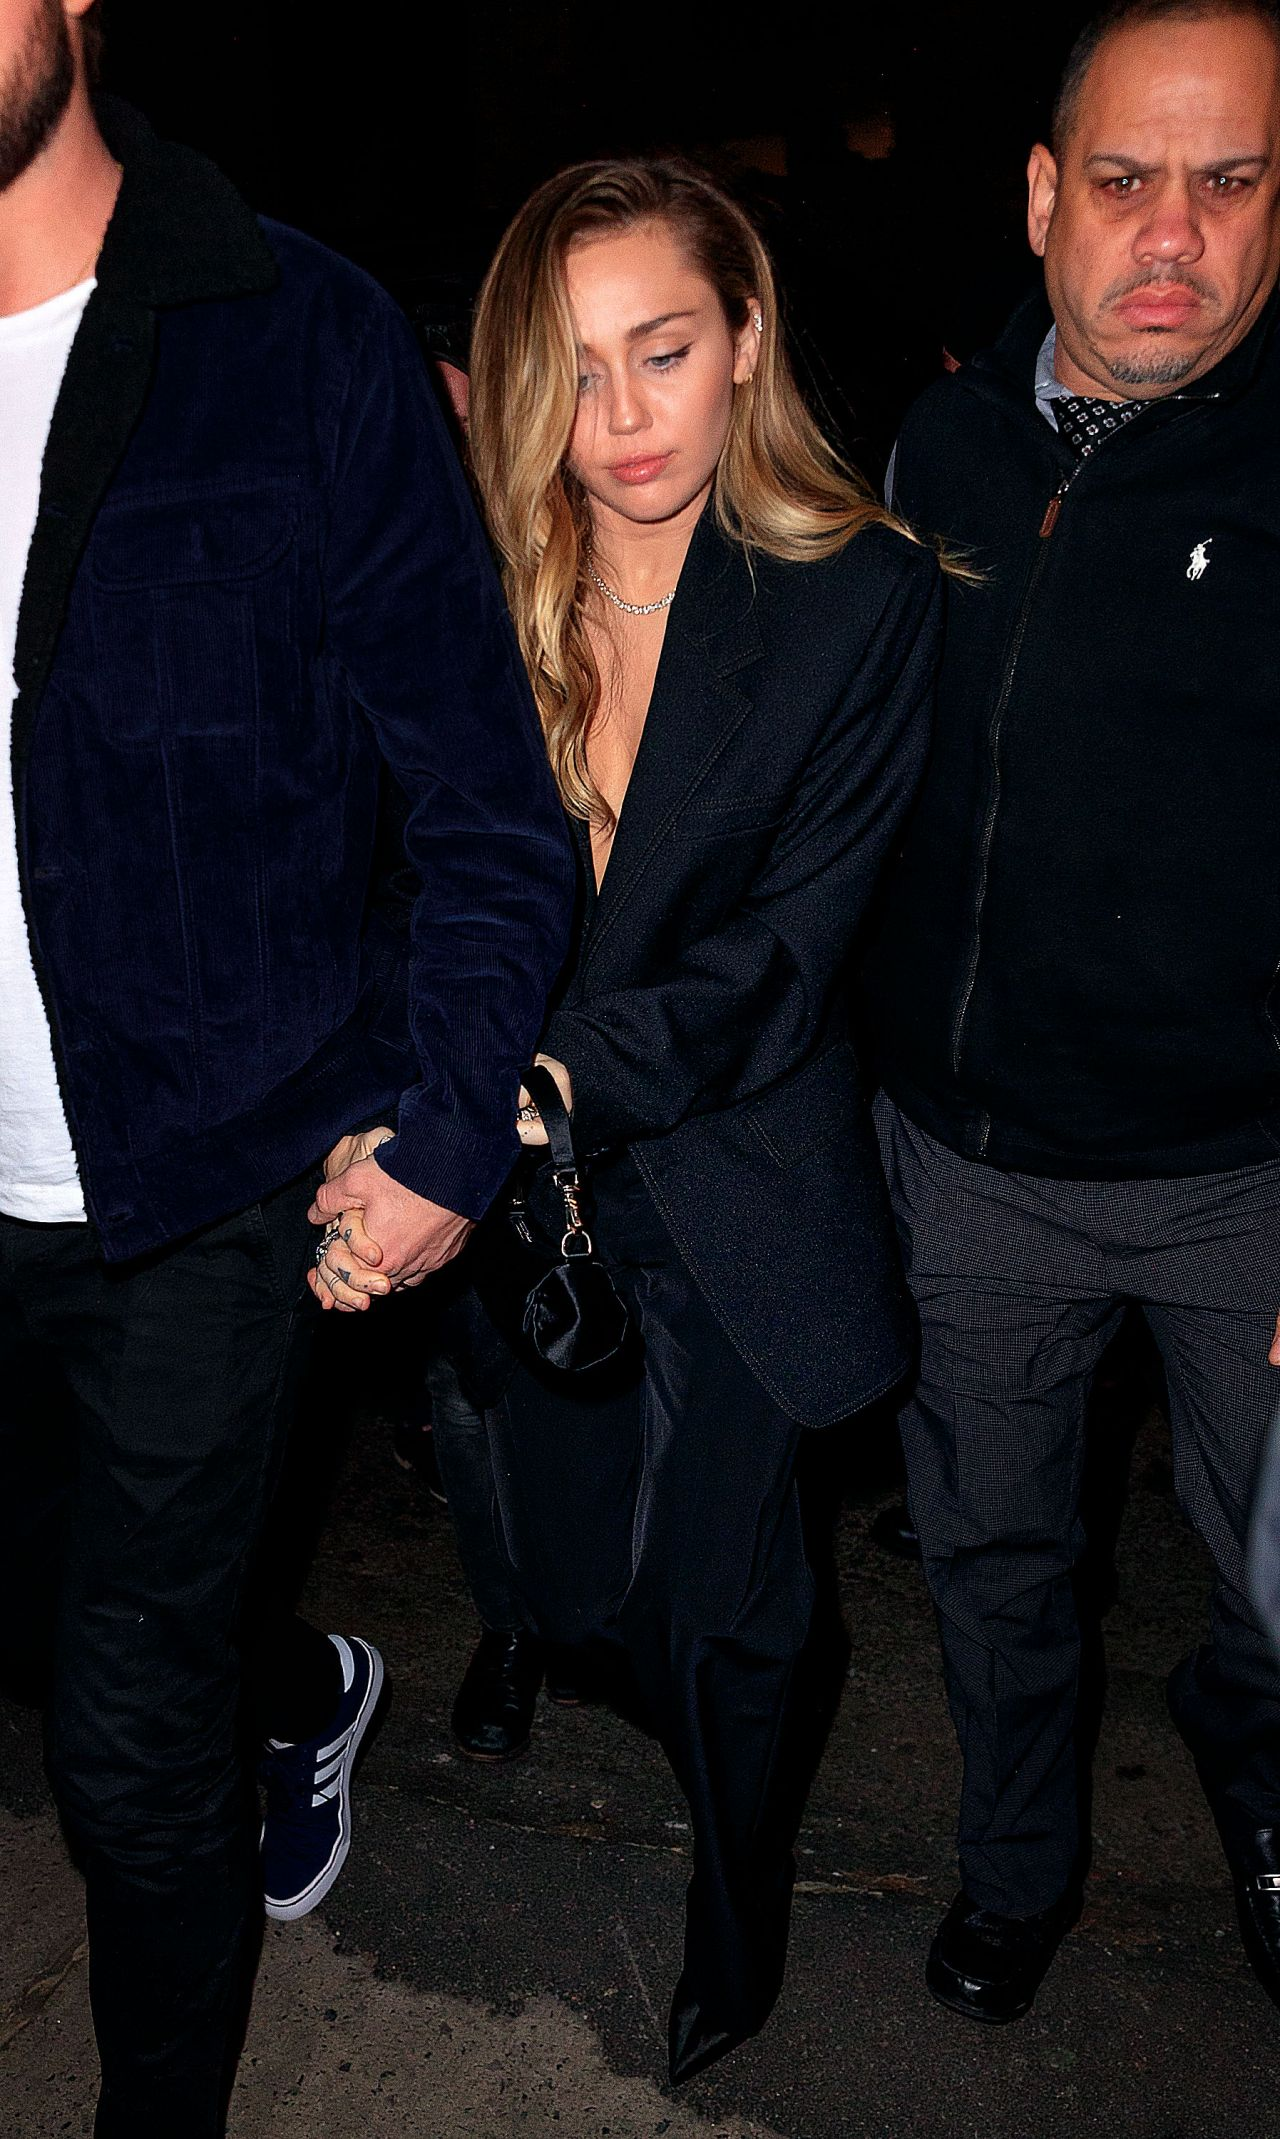 149249c40e5392 Miley Cyrus and Liam Hemsworth - Arriving to the SNL After Party in NY 12